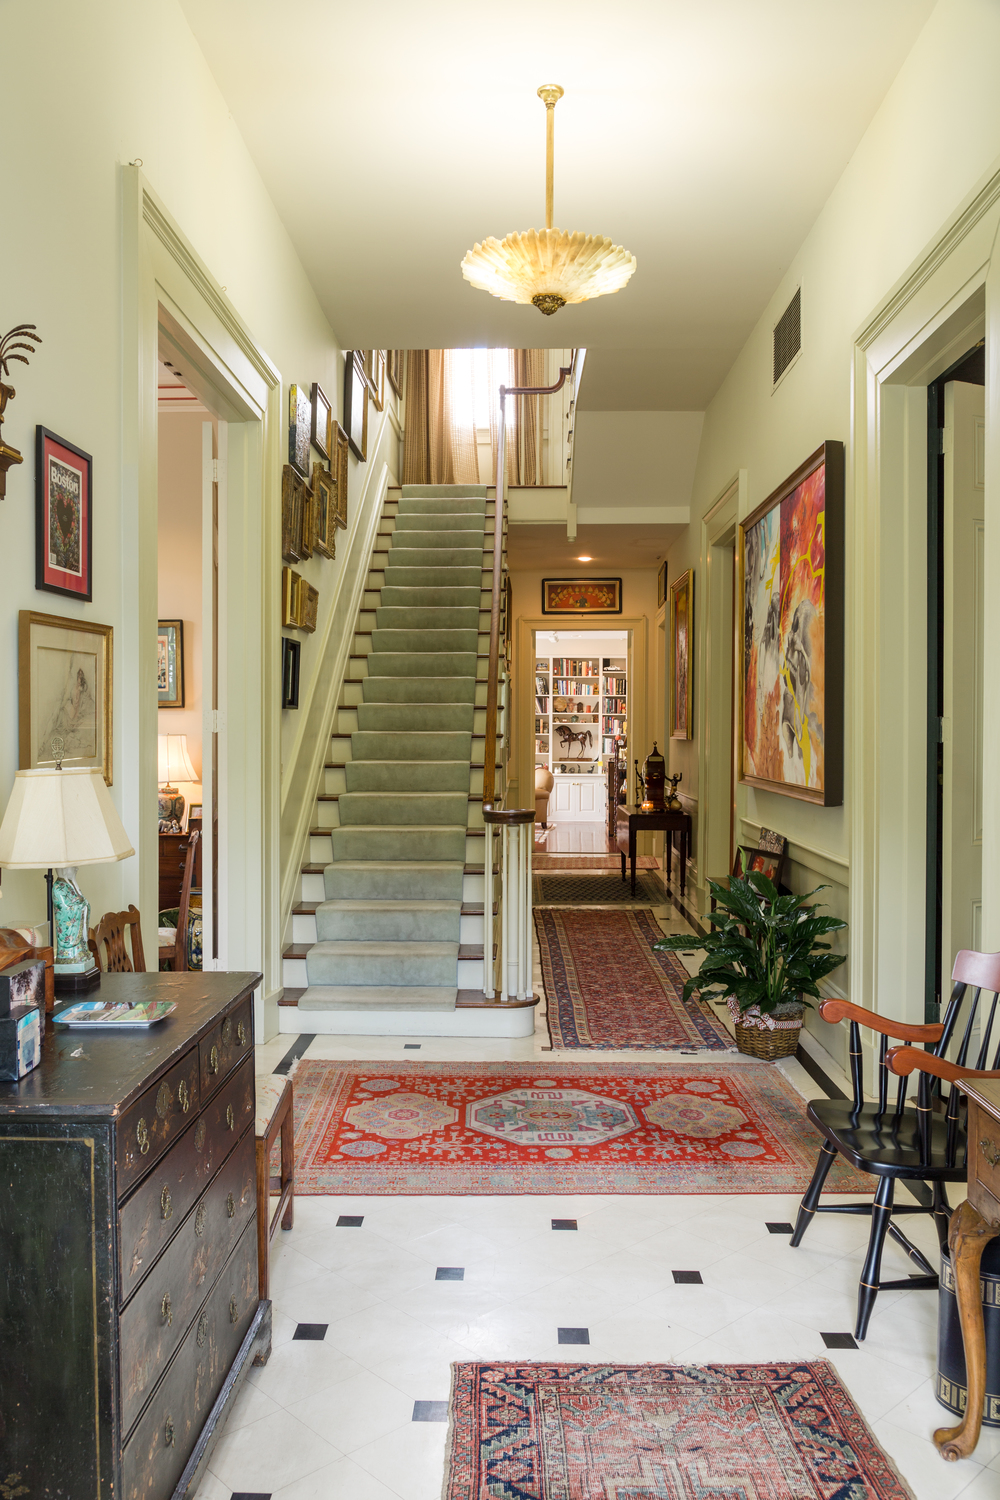 PRC New Orleans Holiday Home Tour, Photo Courtesy Sarah Essex Bradley